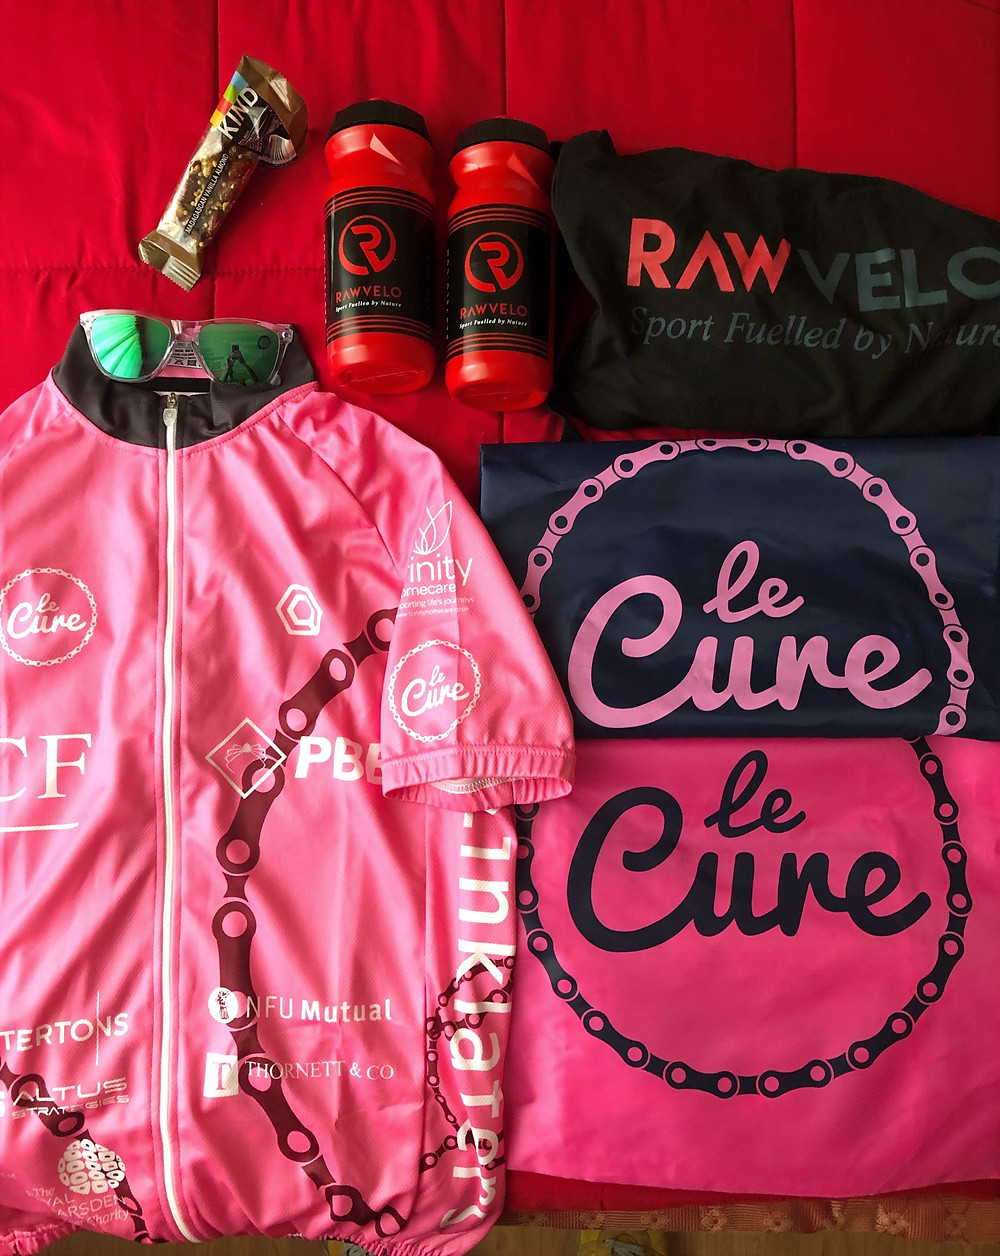 cycling kit and sports nutrition products